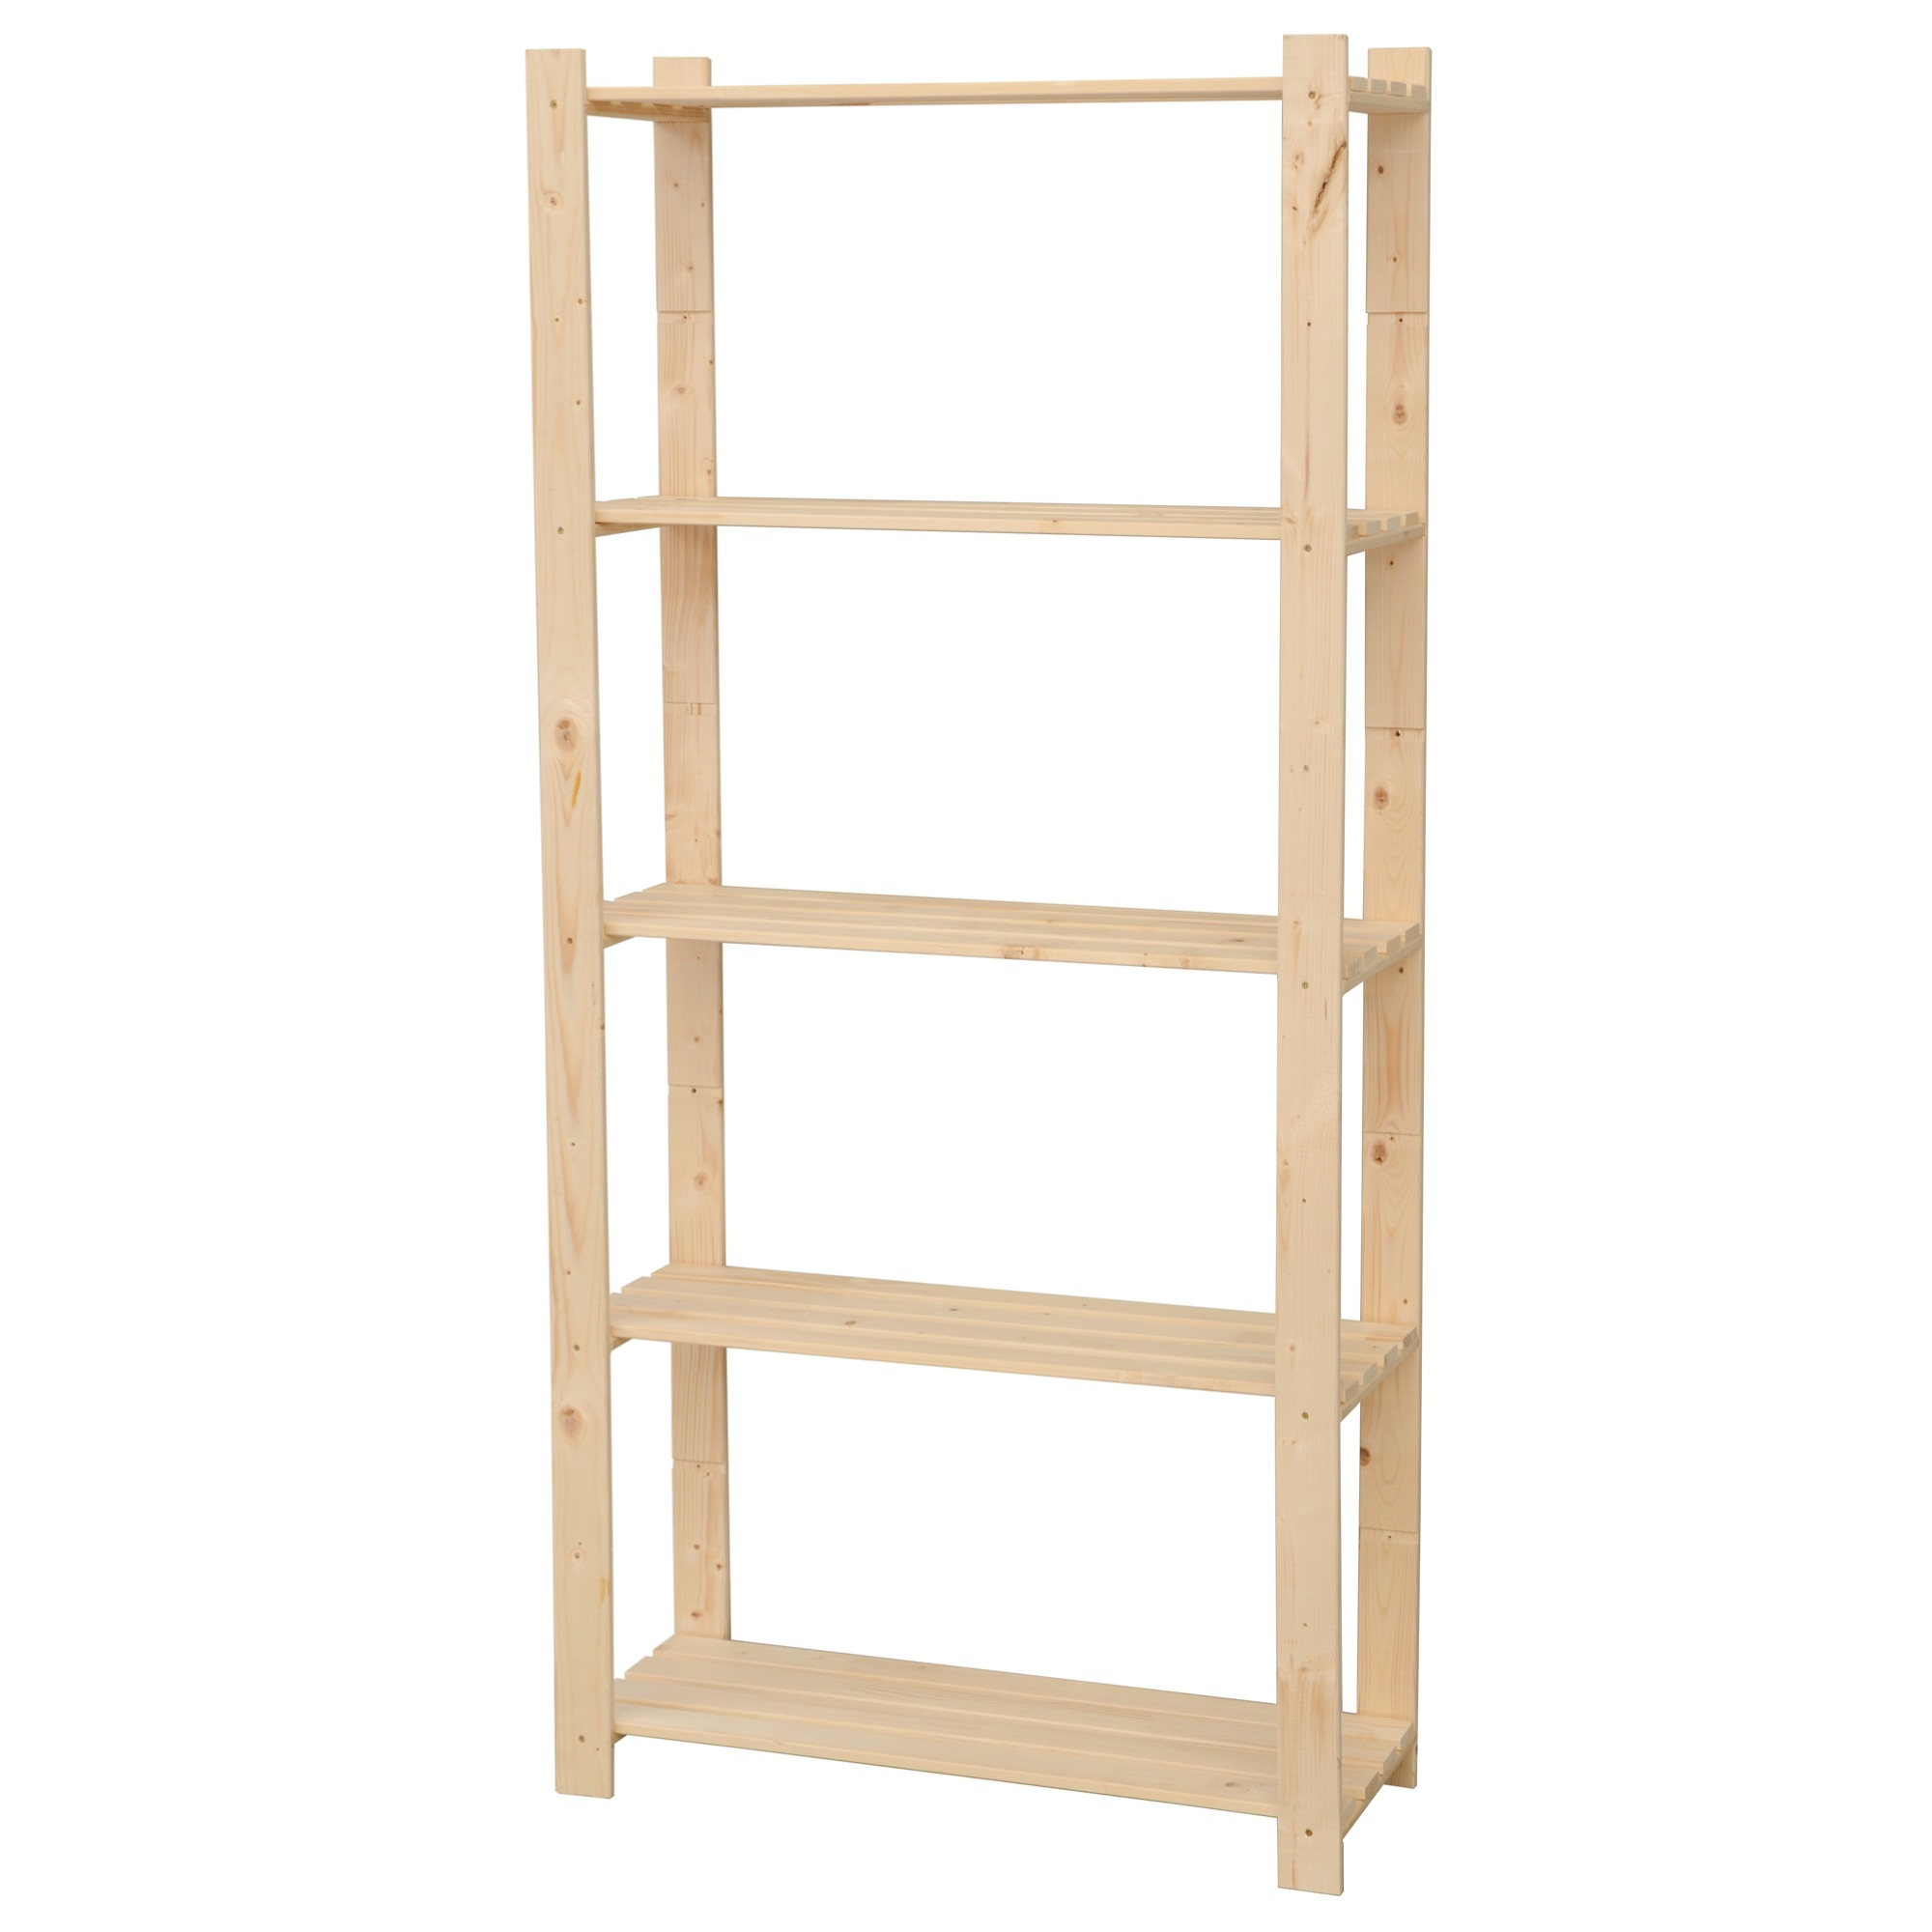 Tag re murale en bois gamma 5 tablettes 45kg tablette 170 for Peindre etagere bois